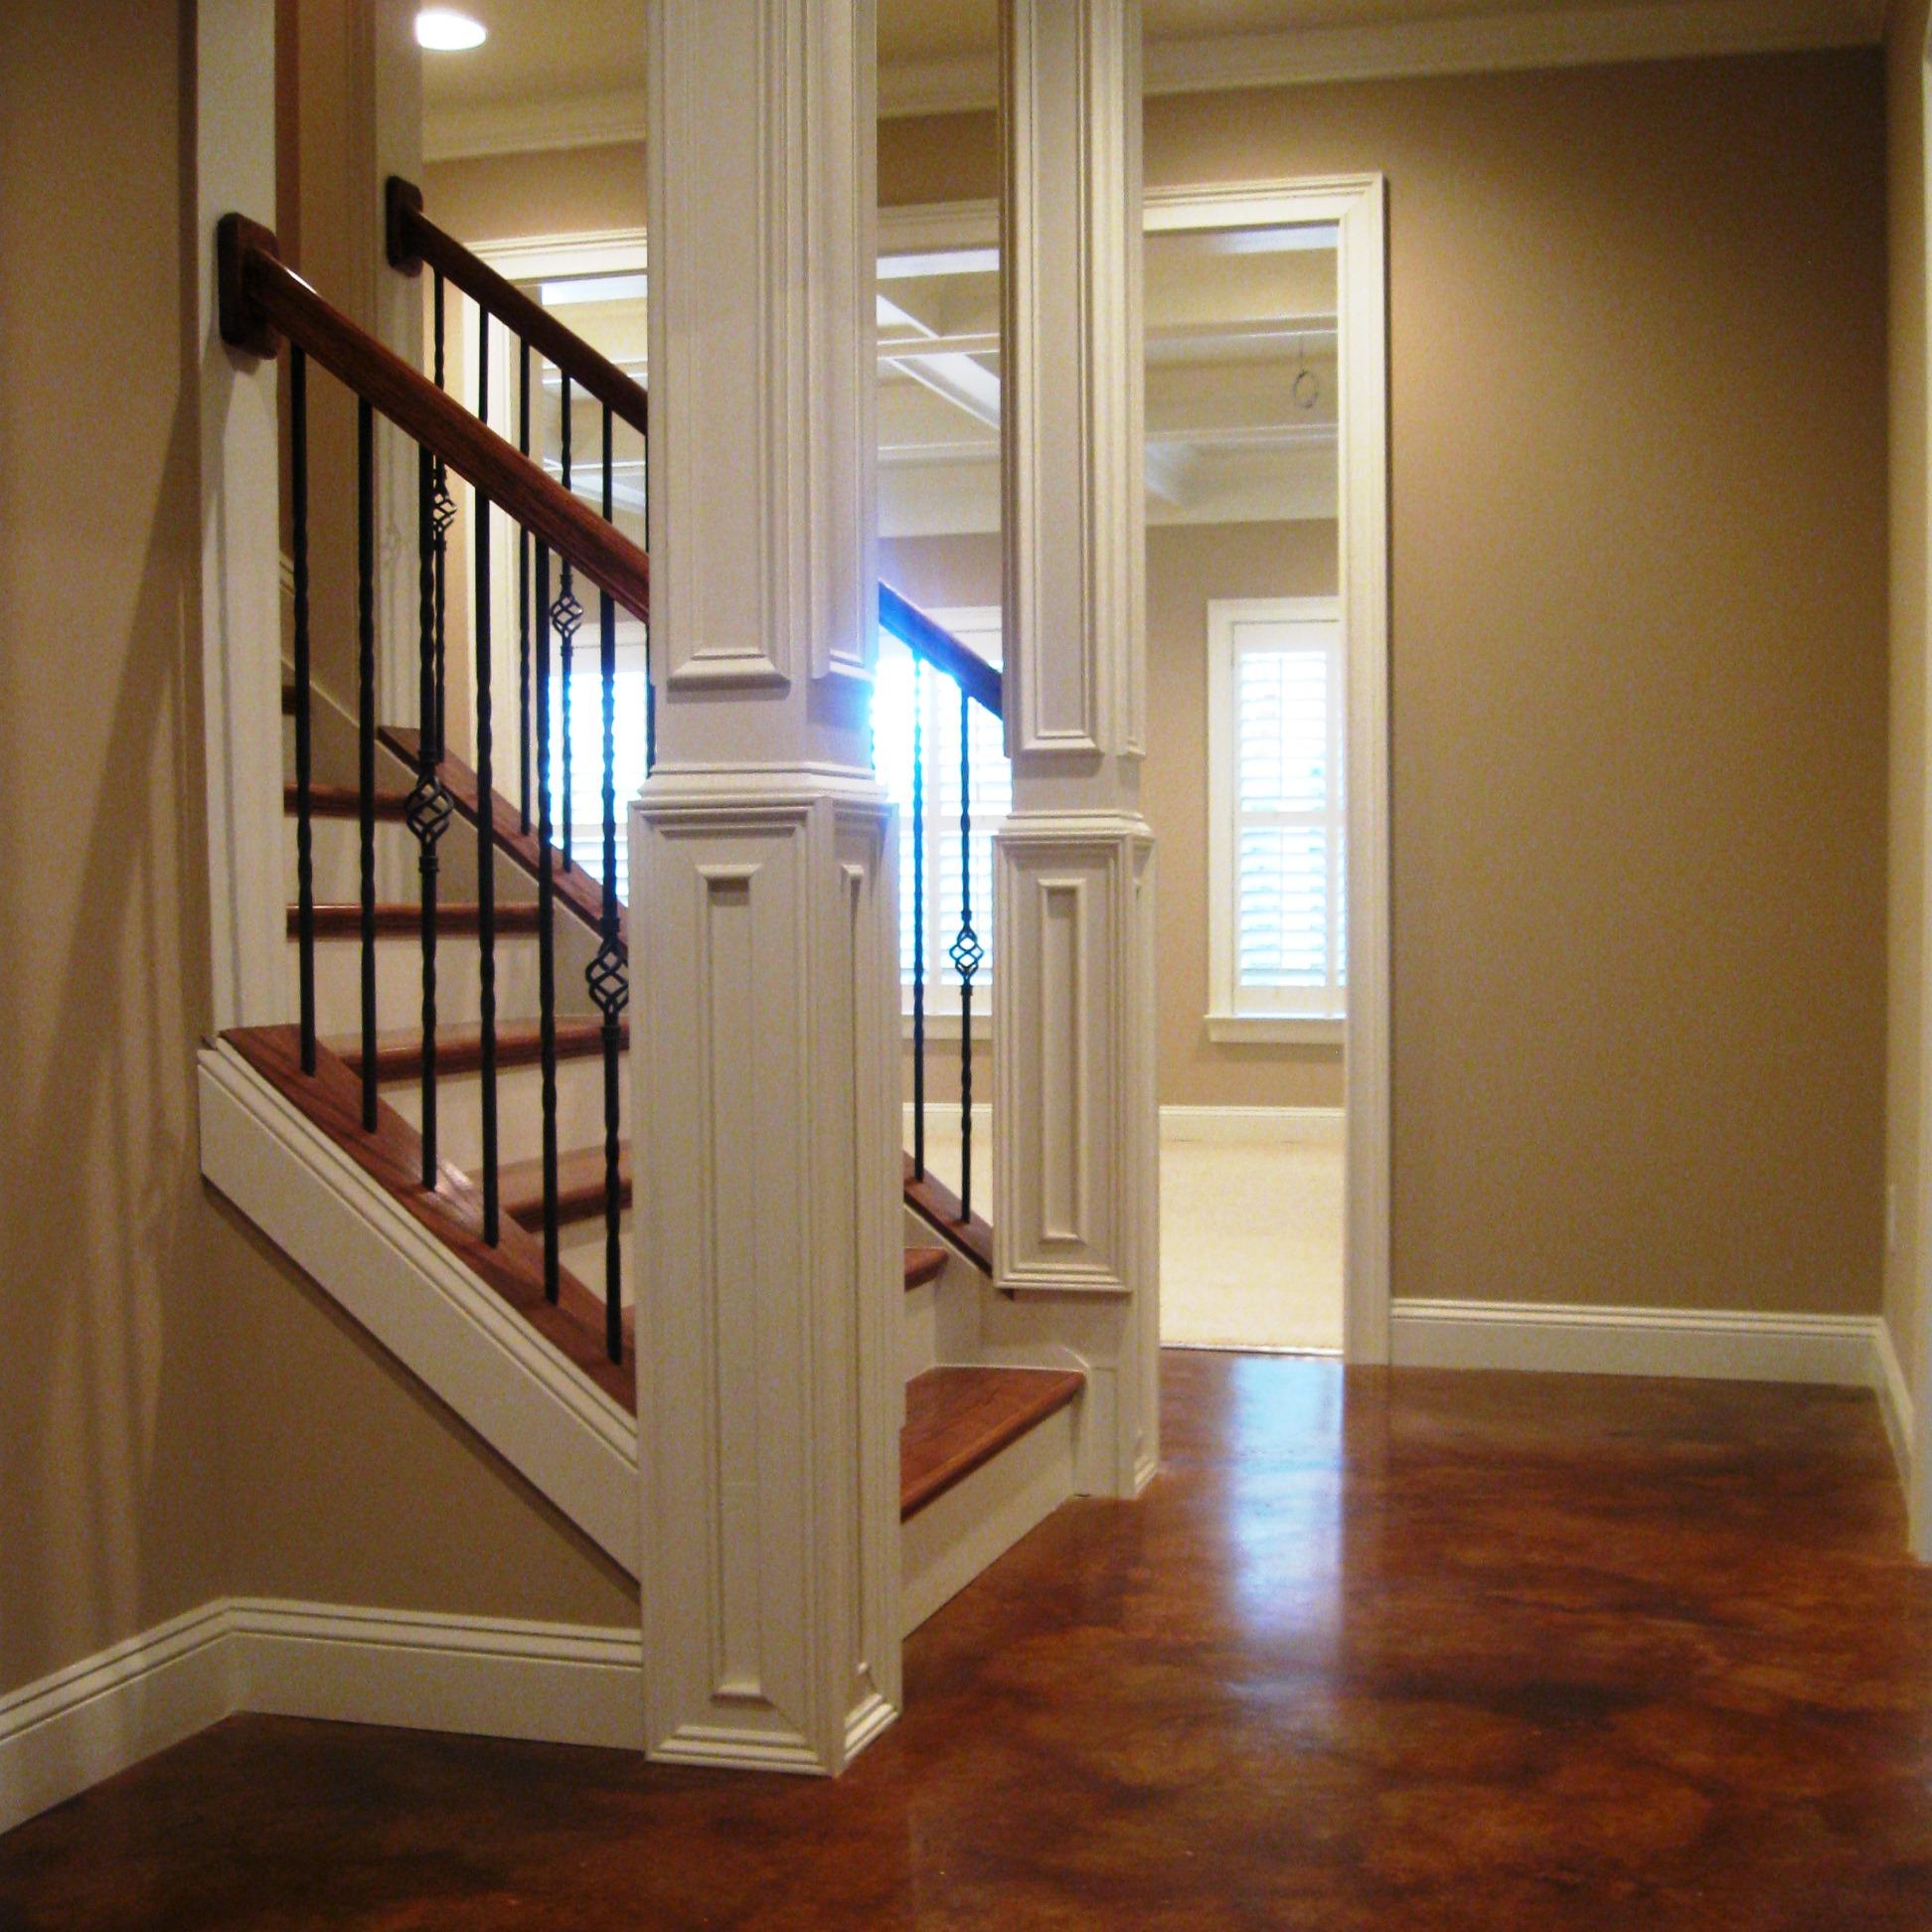 THE SOUTHERN BASEMENT COMPANY- Providing Custom Basement